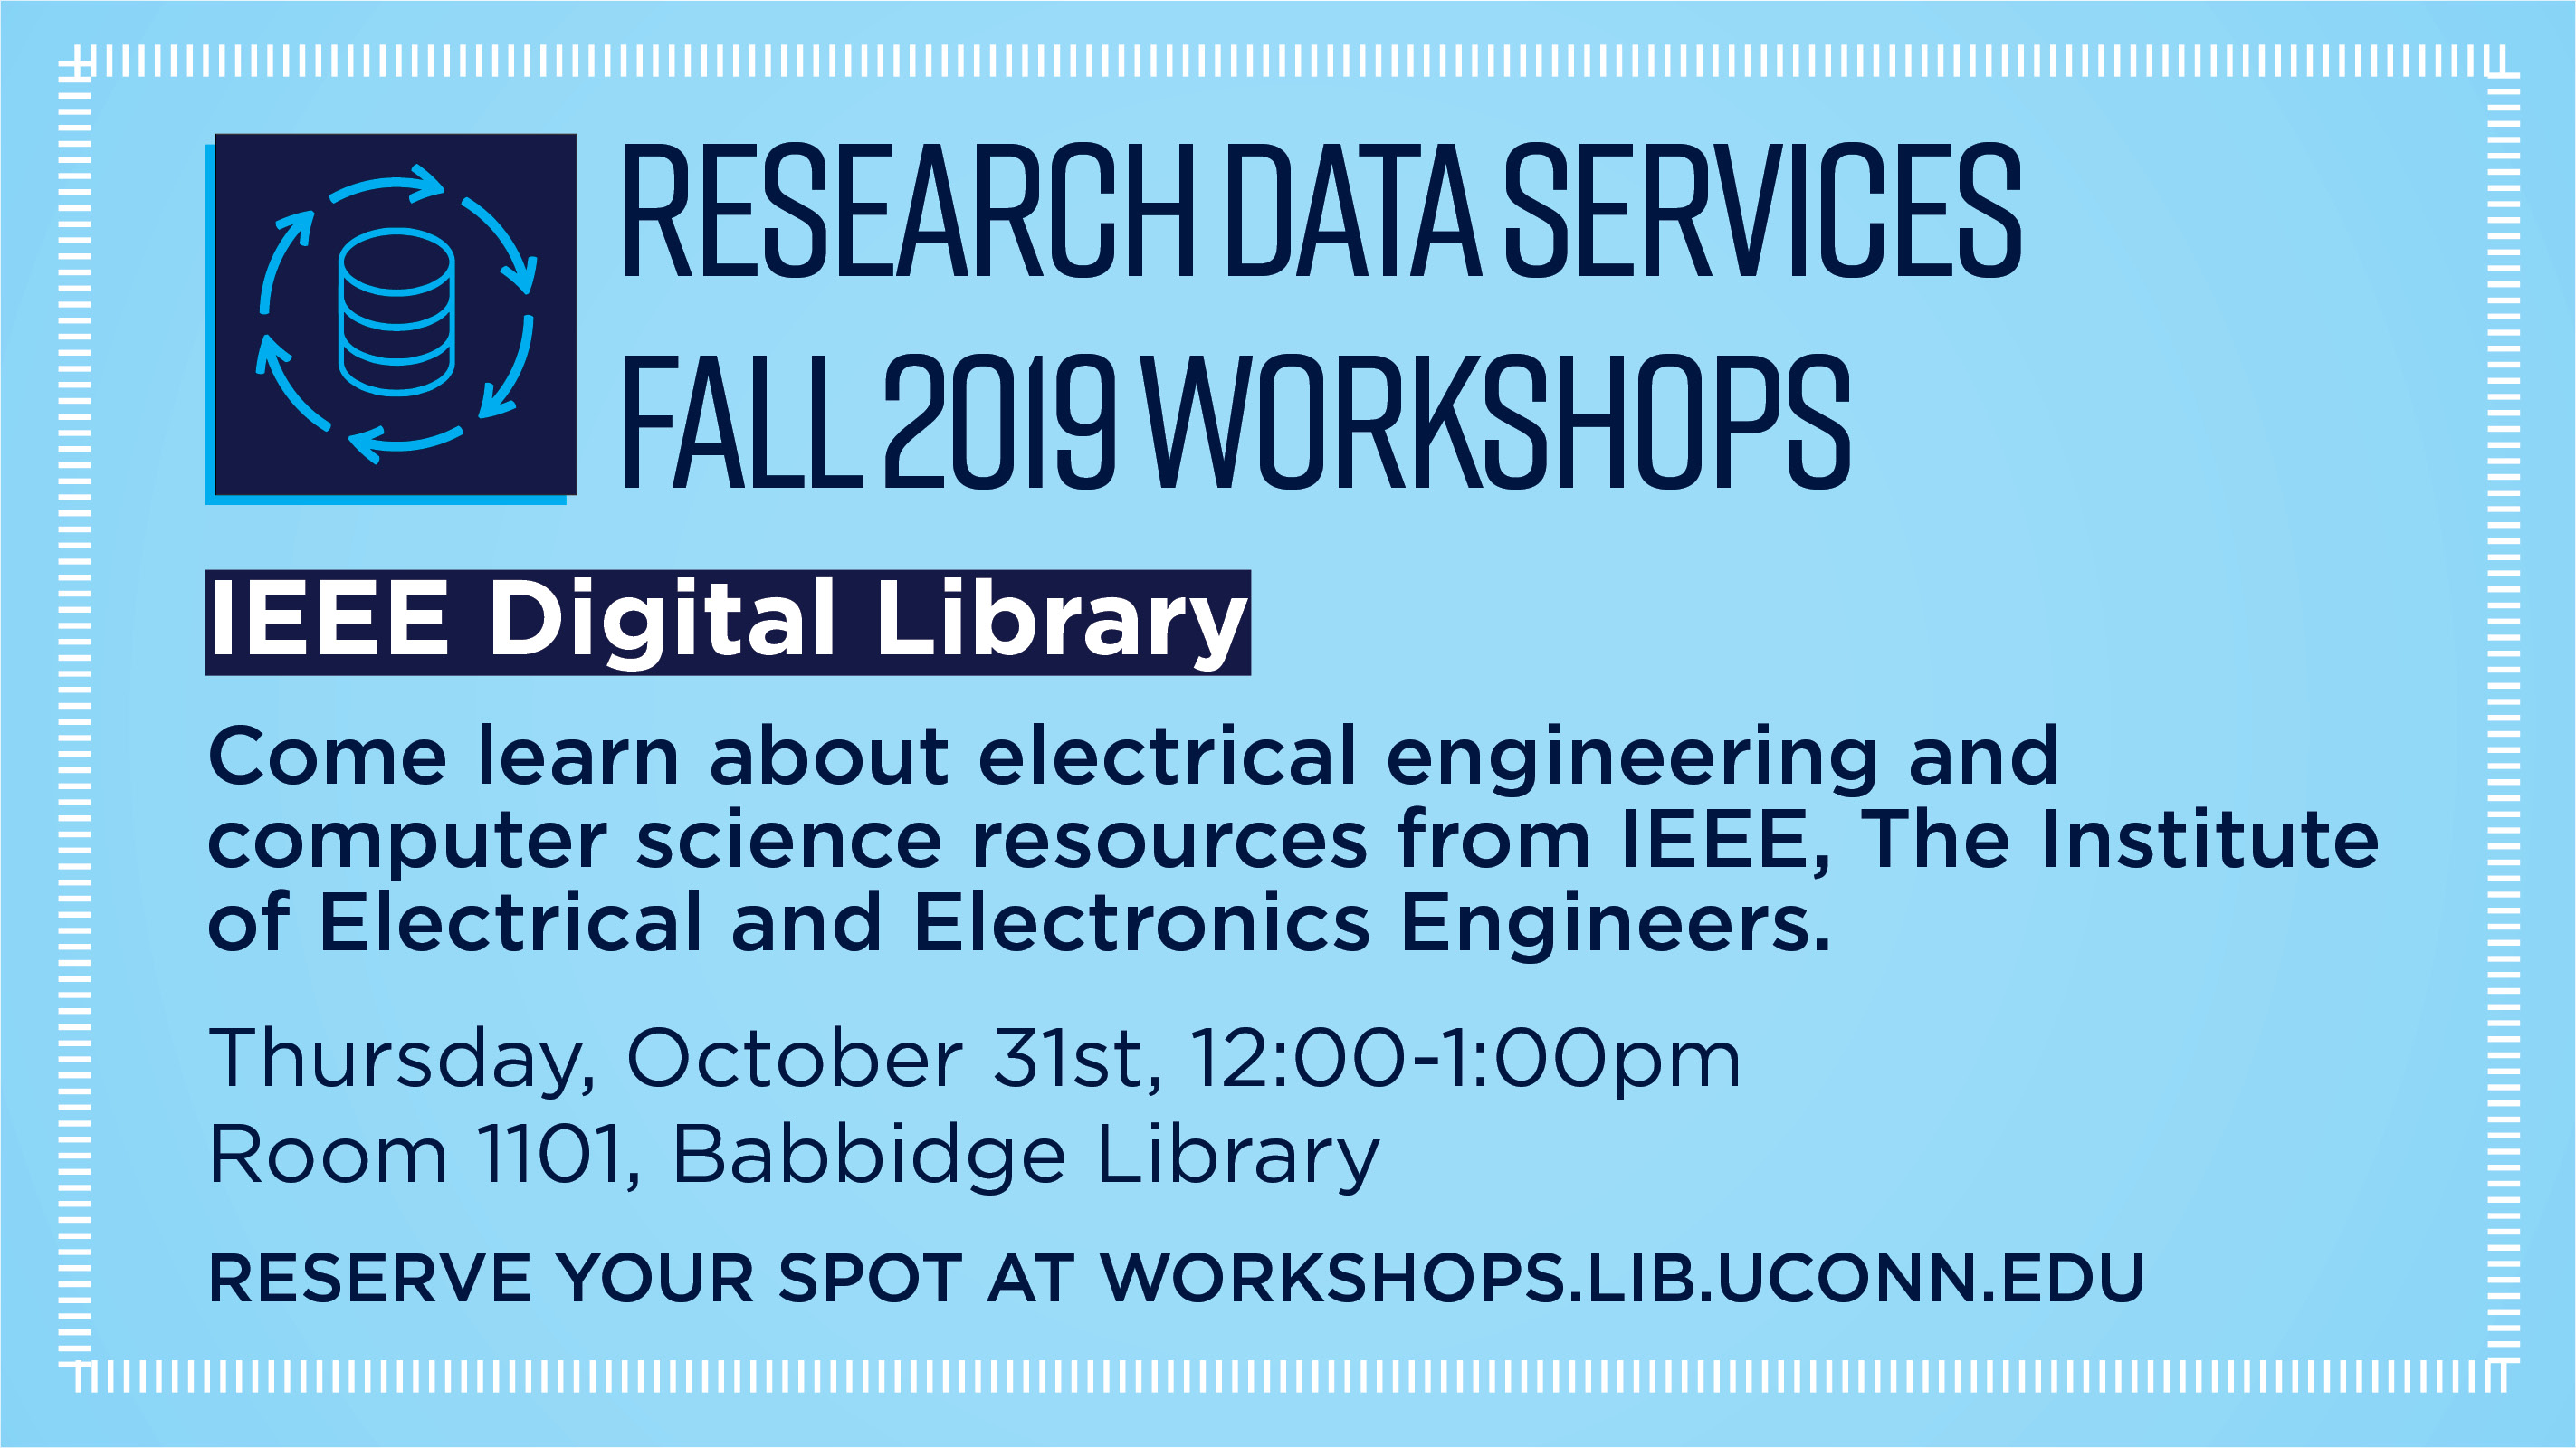 Research Data Services Fall 2019 Workshops DMPTool Do you need to create Data Management Plans for your NSF-funded grants? Come learn about the basics of writing a Data Management Plan, and learn how to use the DMPTool. The DMPTool is a free resource that guides you through the process of creating a DMP, and provides updated templates and guidance. Wednesday October 30, 3:00-4:00pm, Room 1102, Babbidge Library Reserve your spot at workshops.lib.uconn.edu